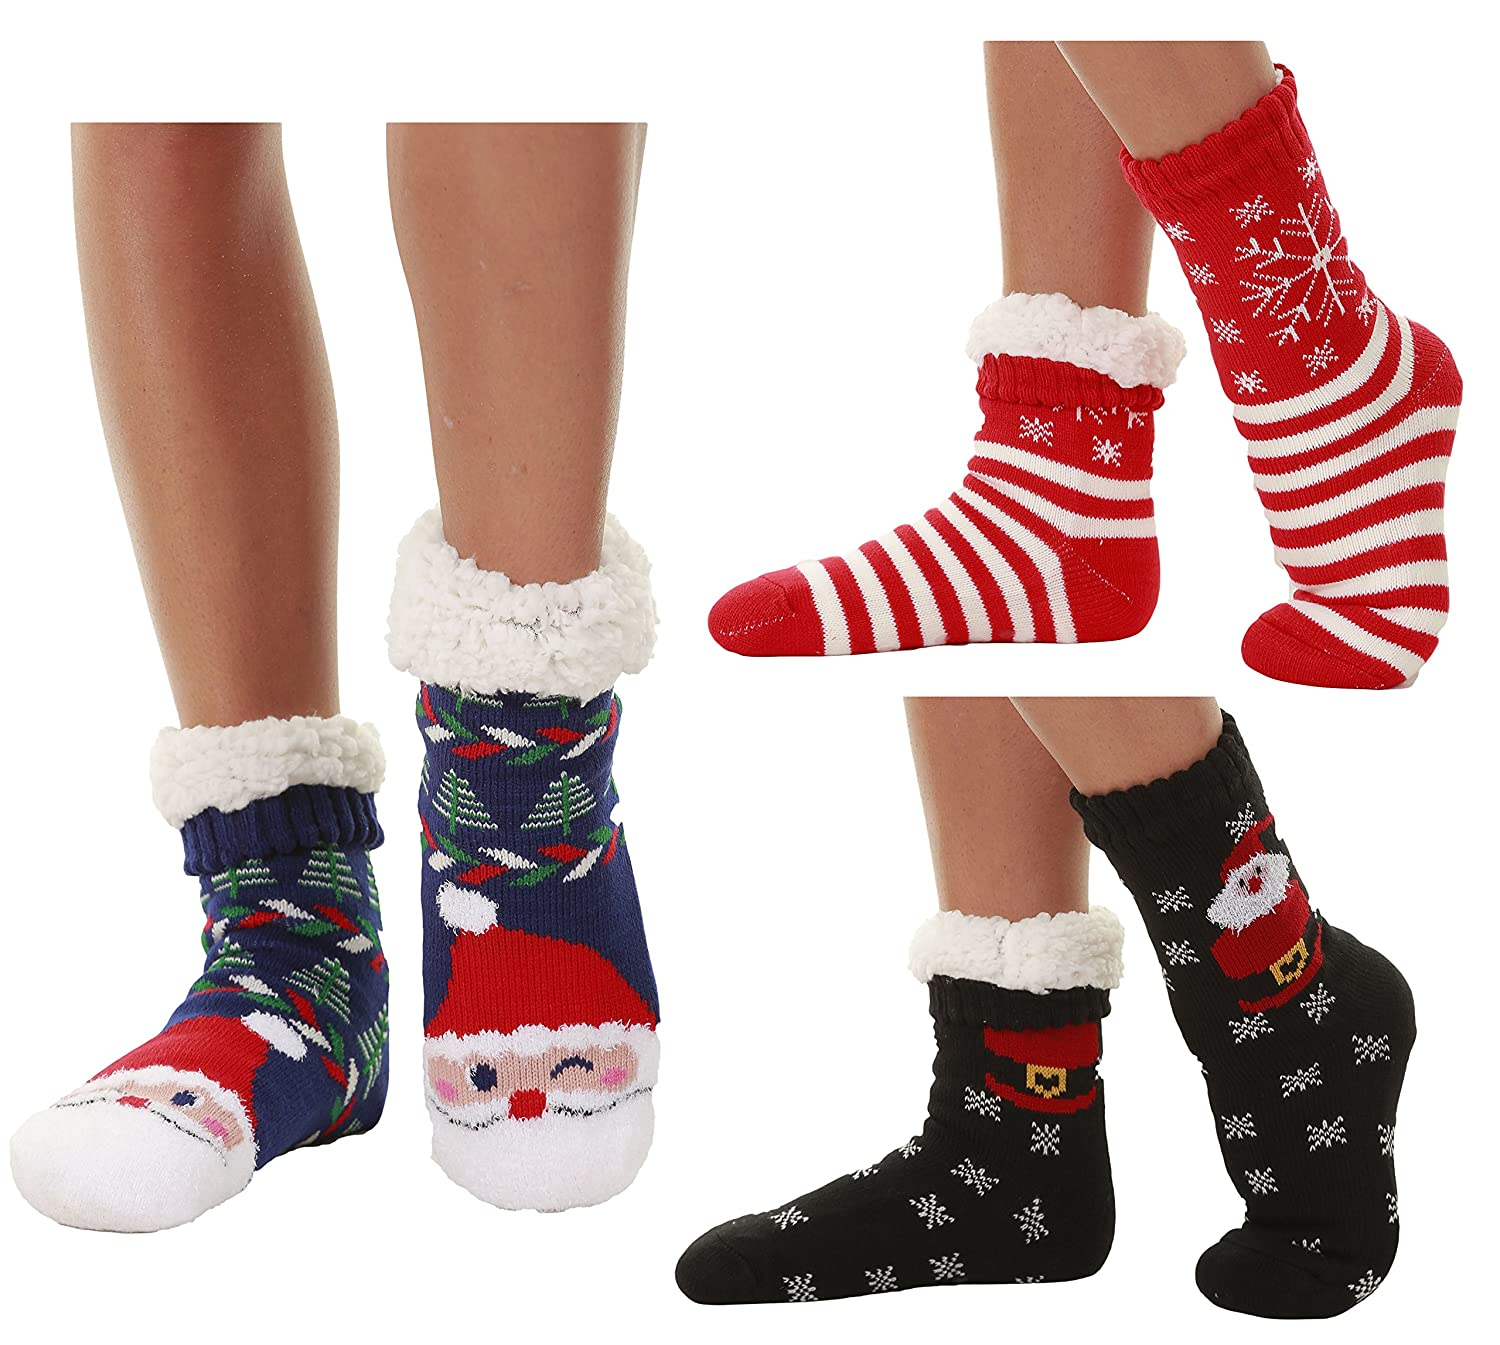 Winter-Weight Thermal Fleece-Lined Cozy Christmas Holiday Sherpa Lined Slipper Socks, 3 Pair Pack